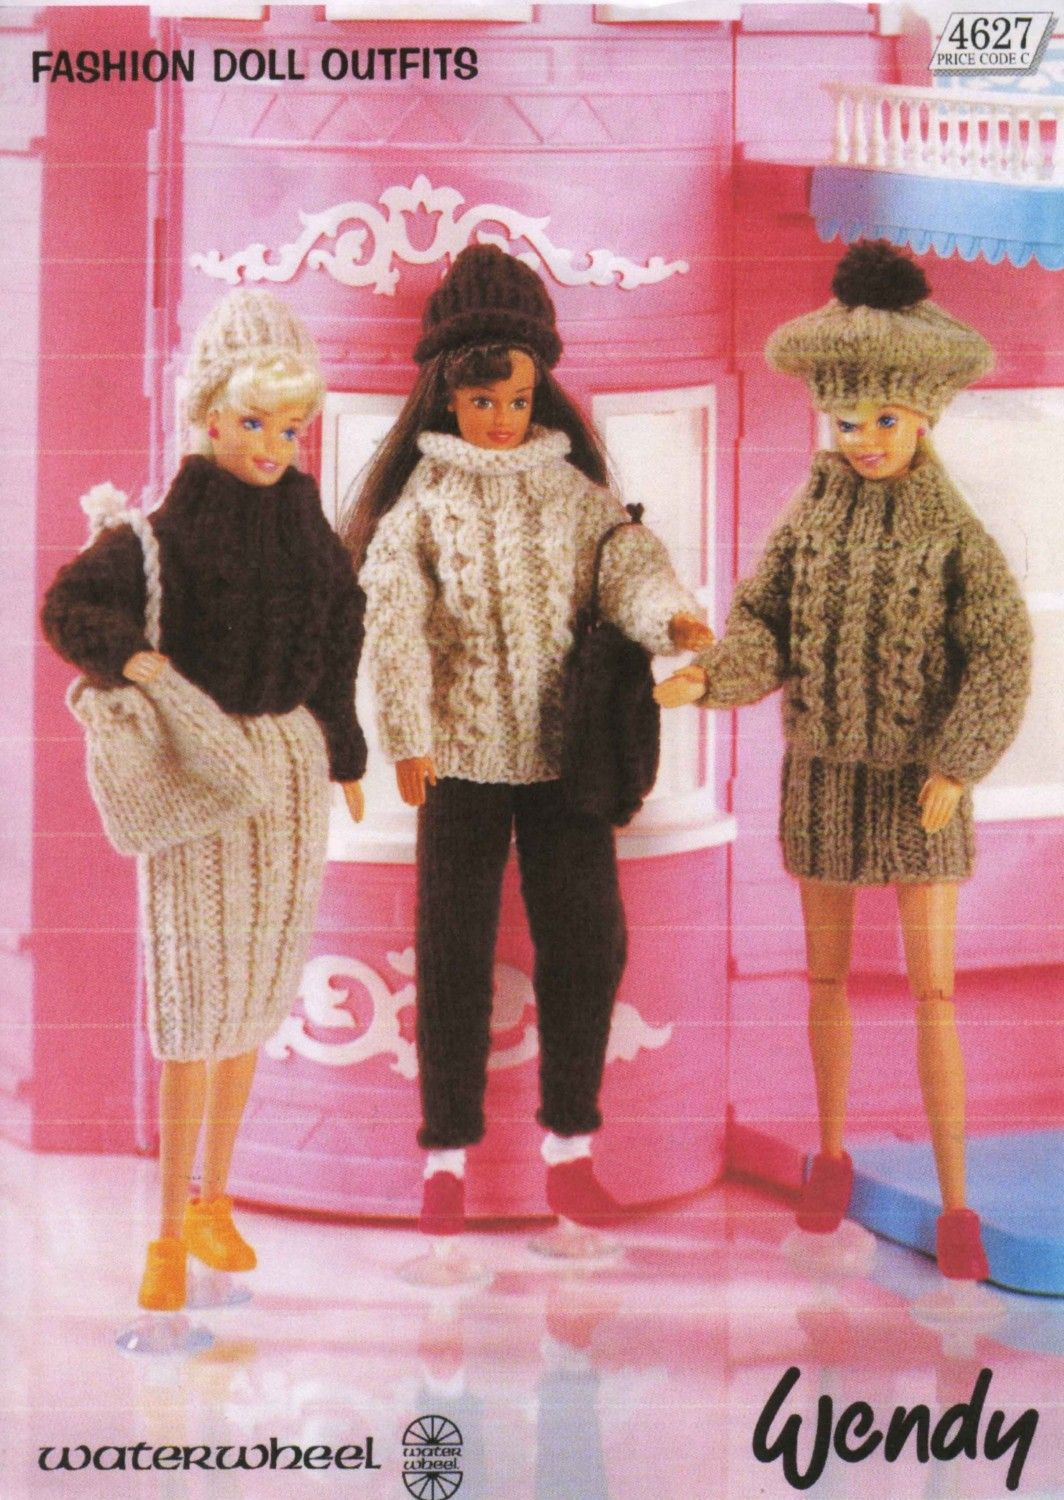 Vintage Fashion Doll Short And Long Skirts Sweater Trousers Hat Beret Rucksack Or Bag